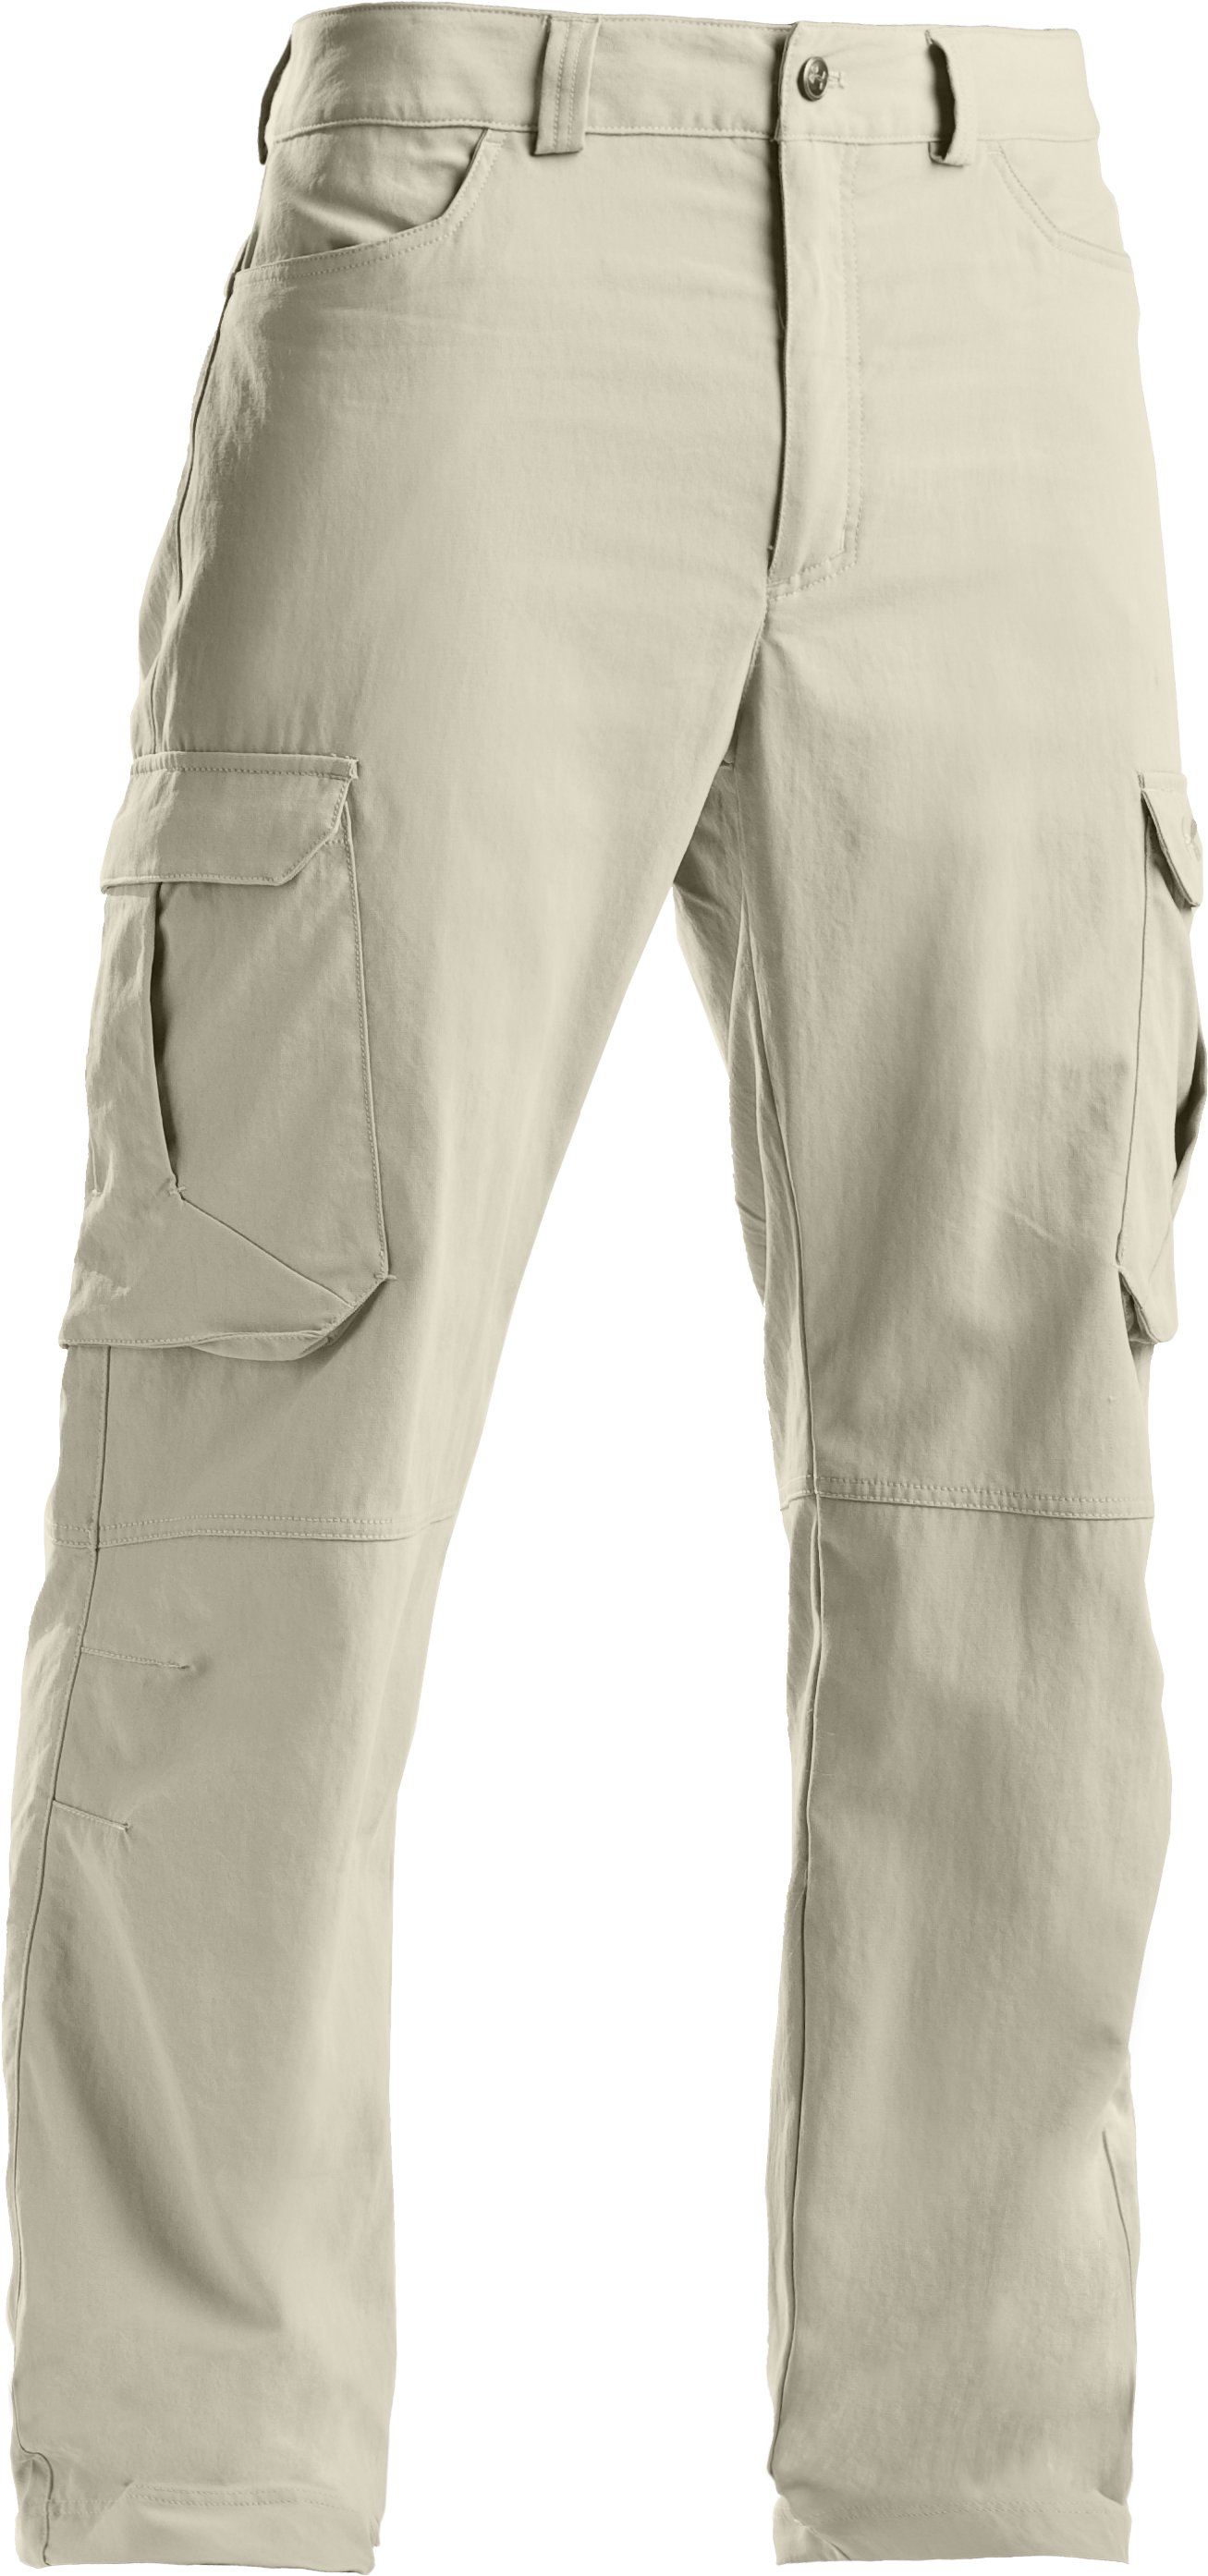 Men's Tactical Performance Field Pants, Desert Sand, undefined